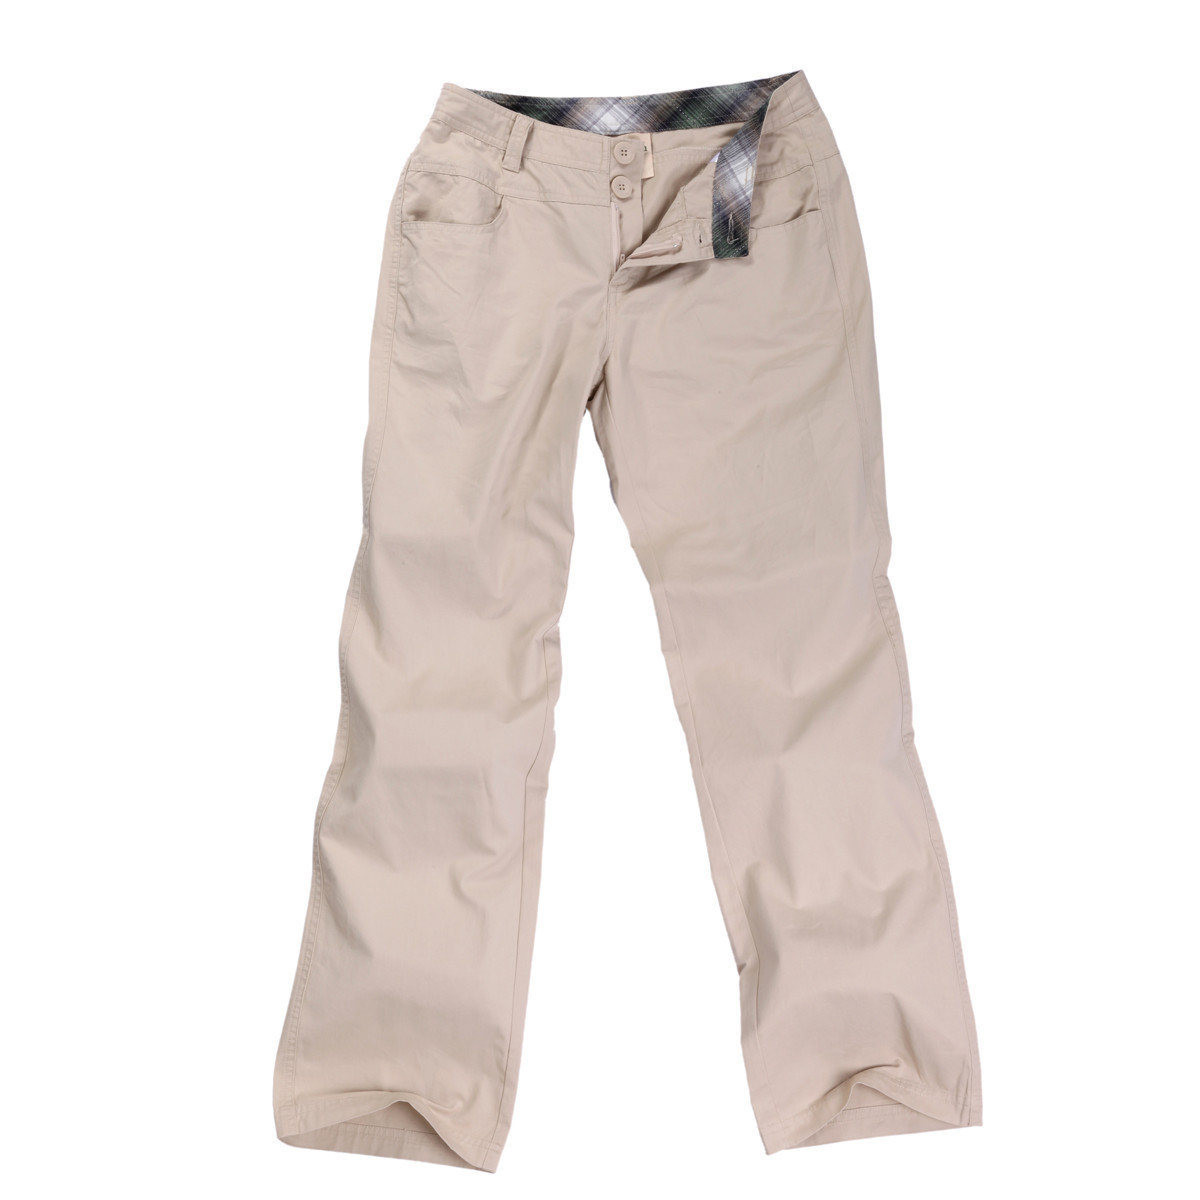 Polyester Cotton Men's Work Utility Safety Long Pants